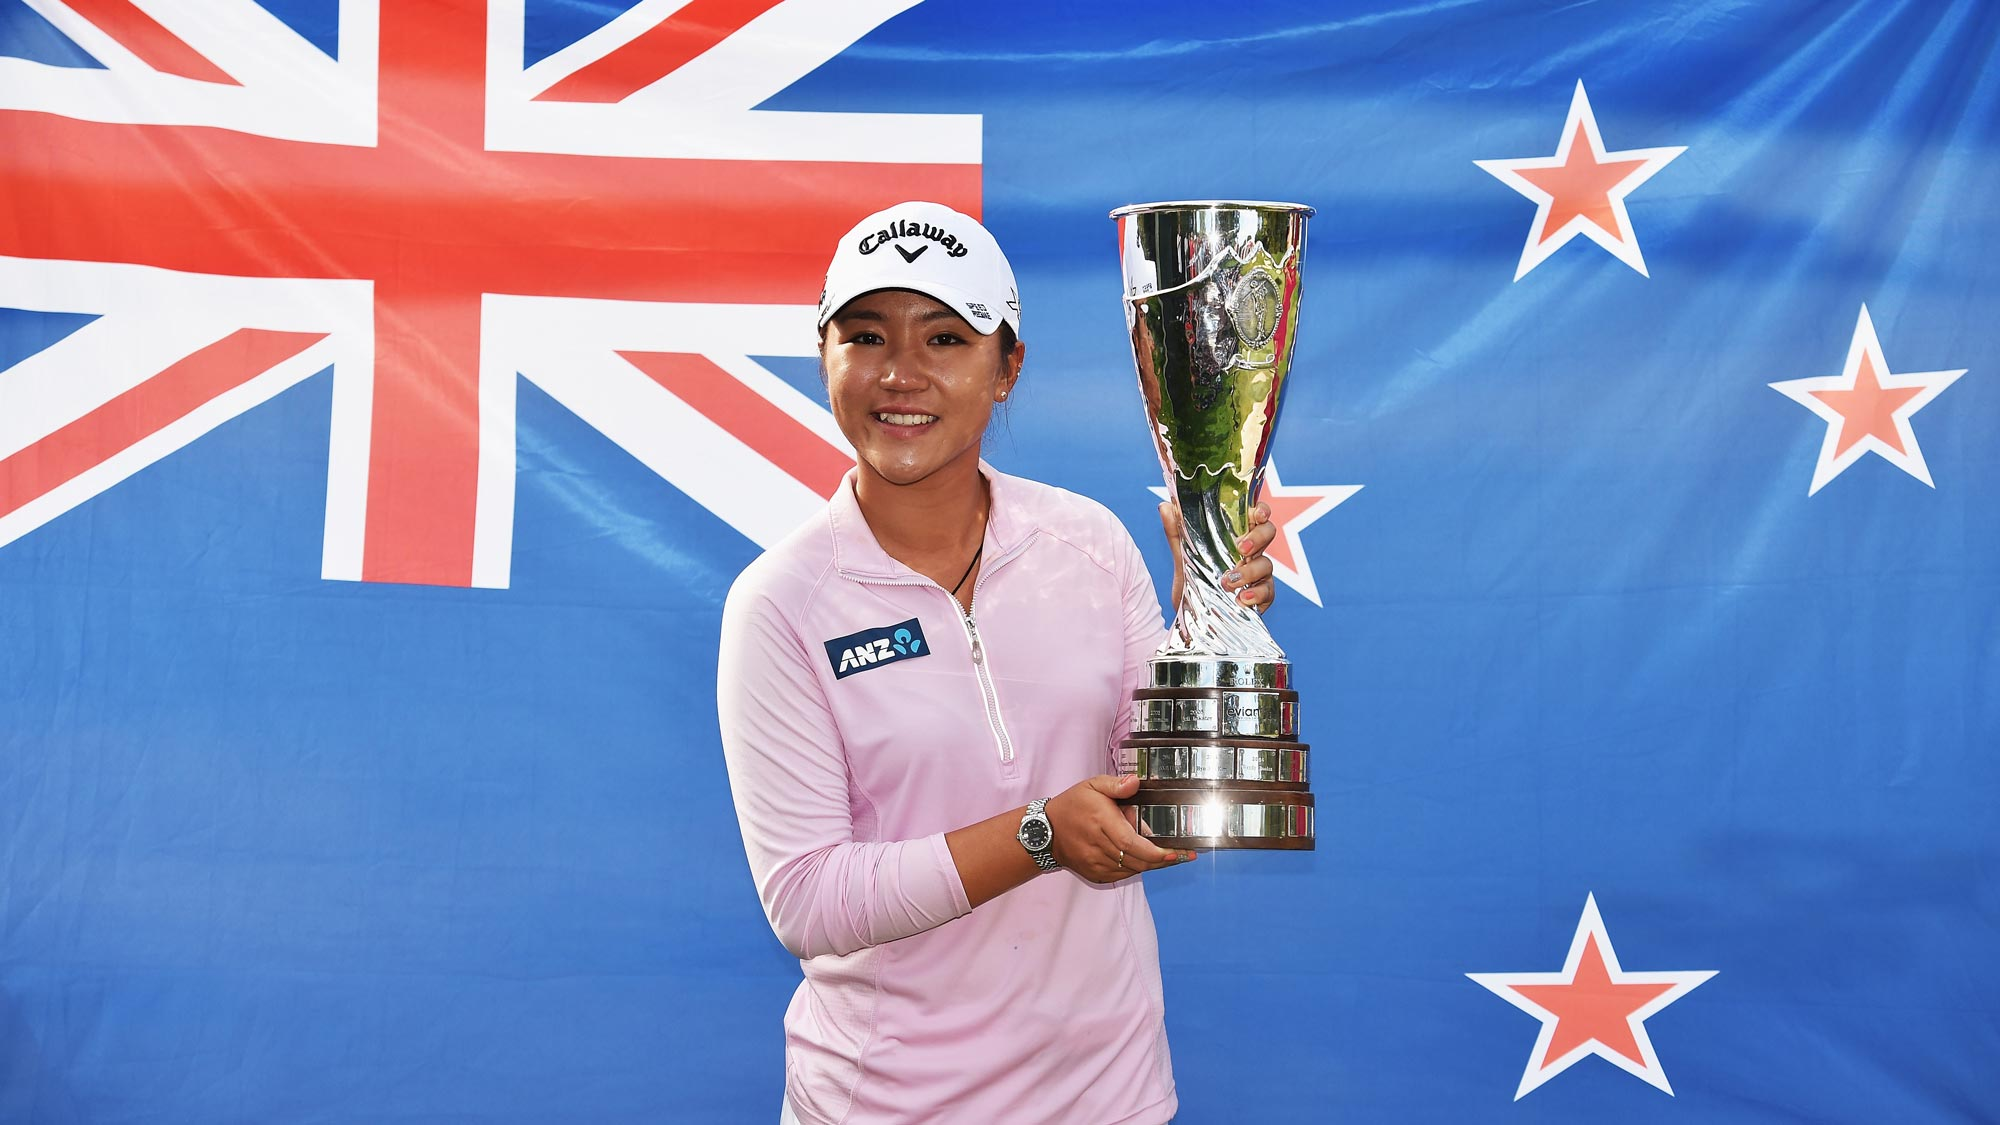 Lydia Ko posing with the Evian Championship Trophy in front of the official flag of New Zealand